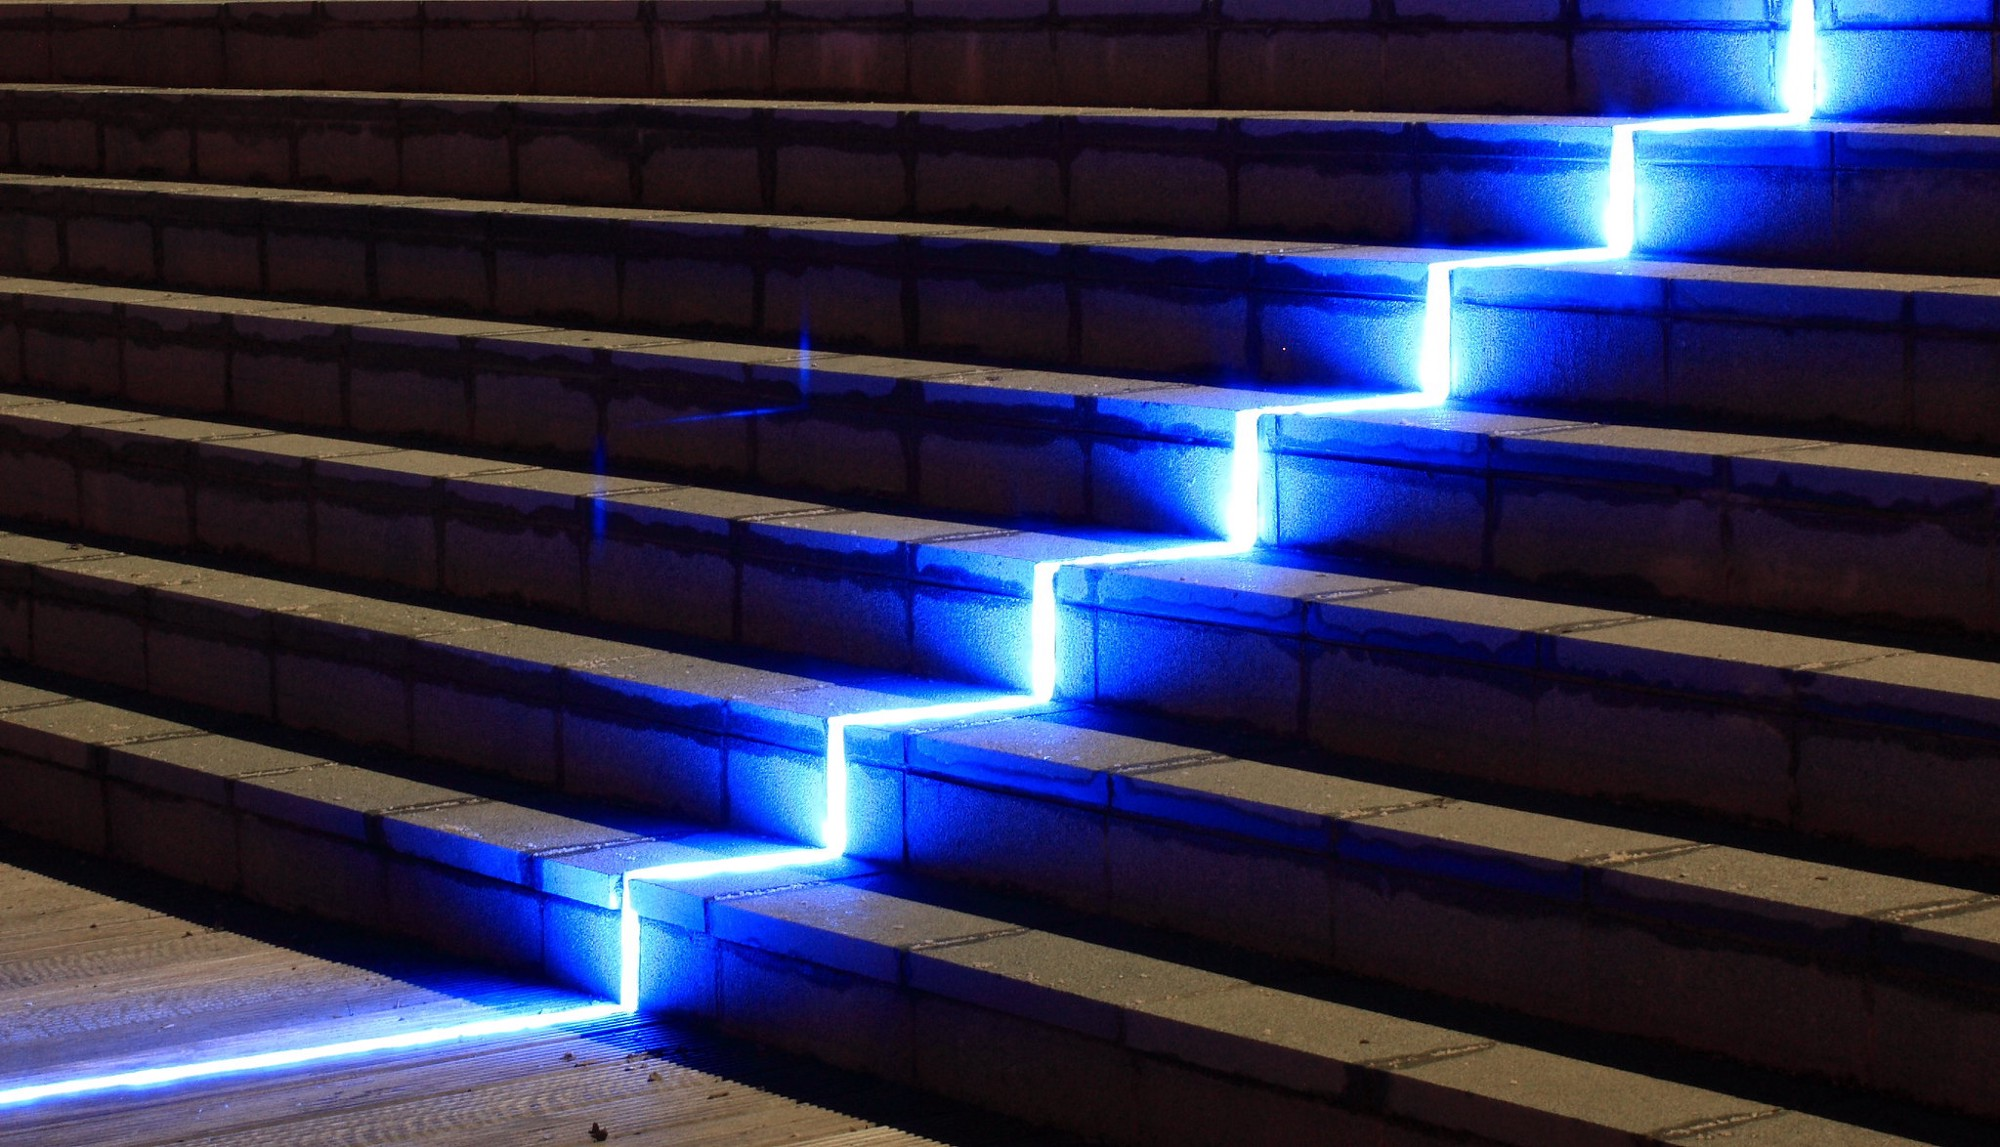 Neon light travelling up concrete steps